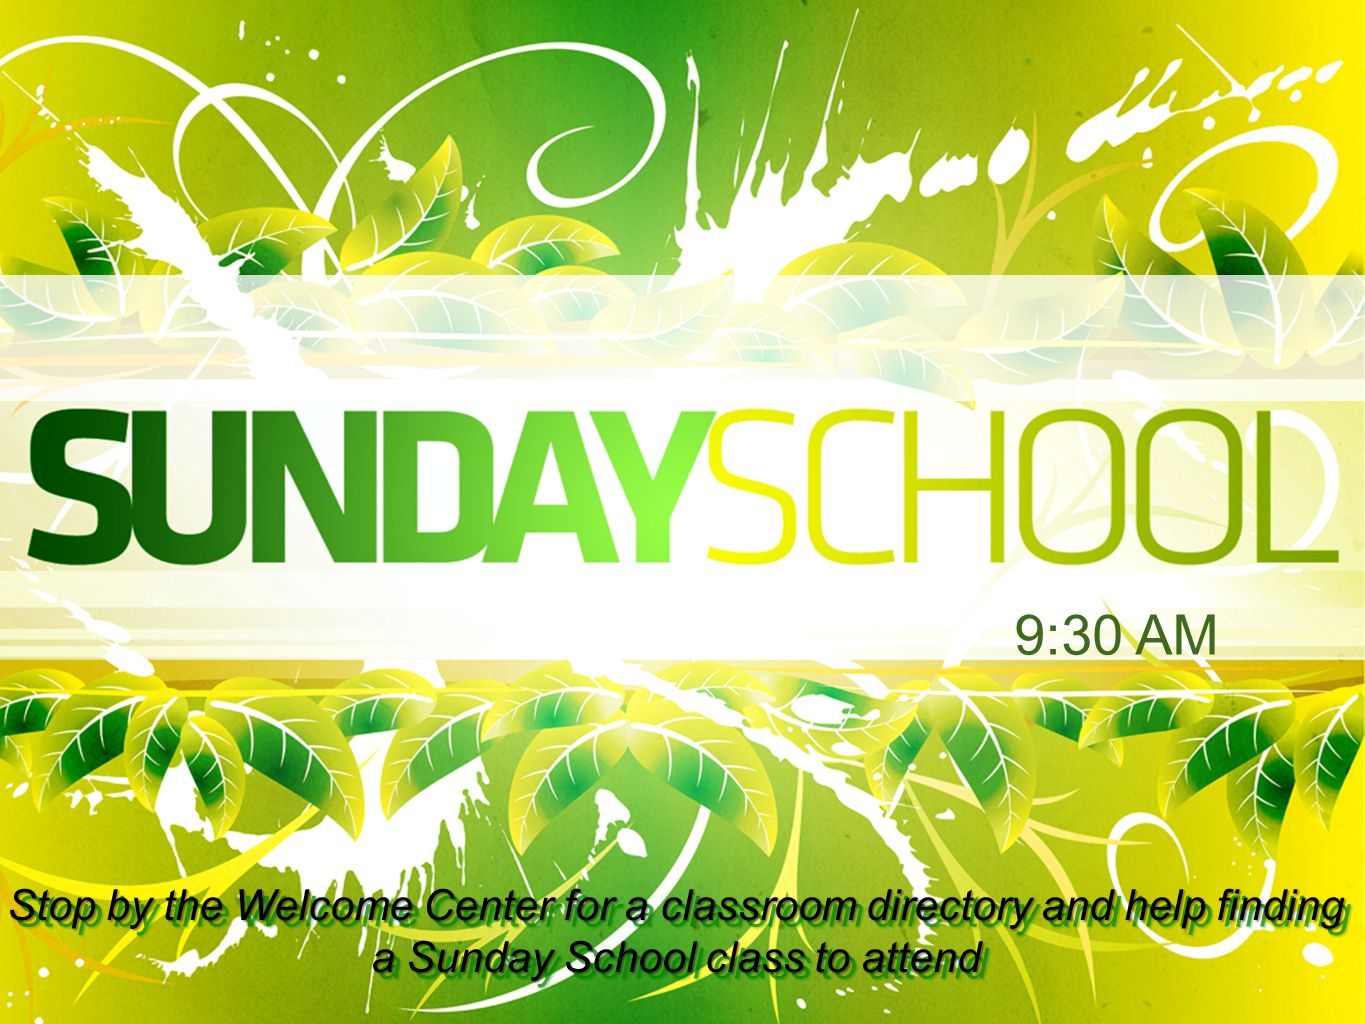 9:30 AM Stop by the Welcome Center for a classroom directory and help finding a Sunday School class to attend.